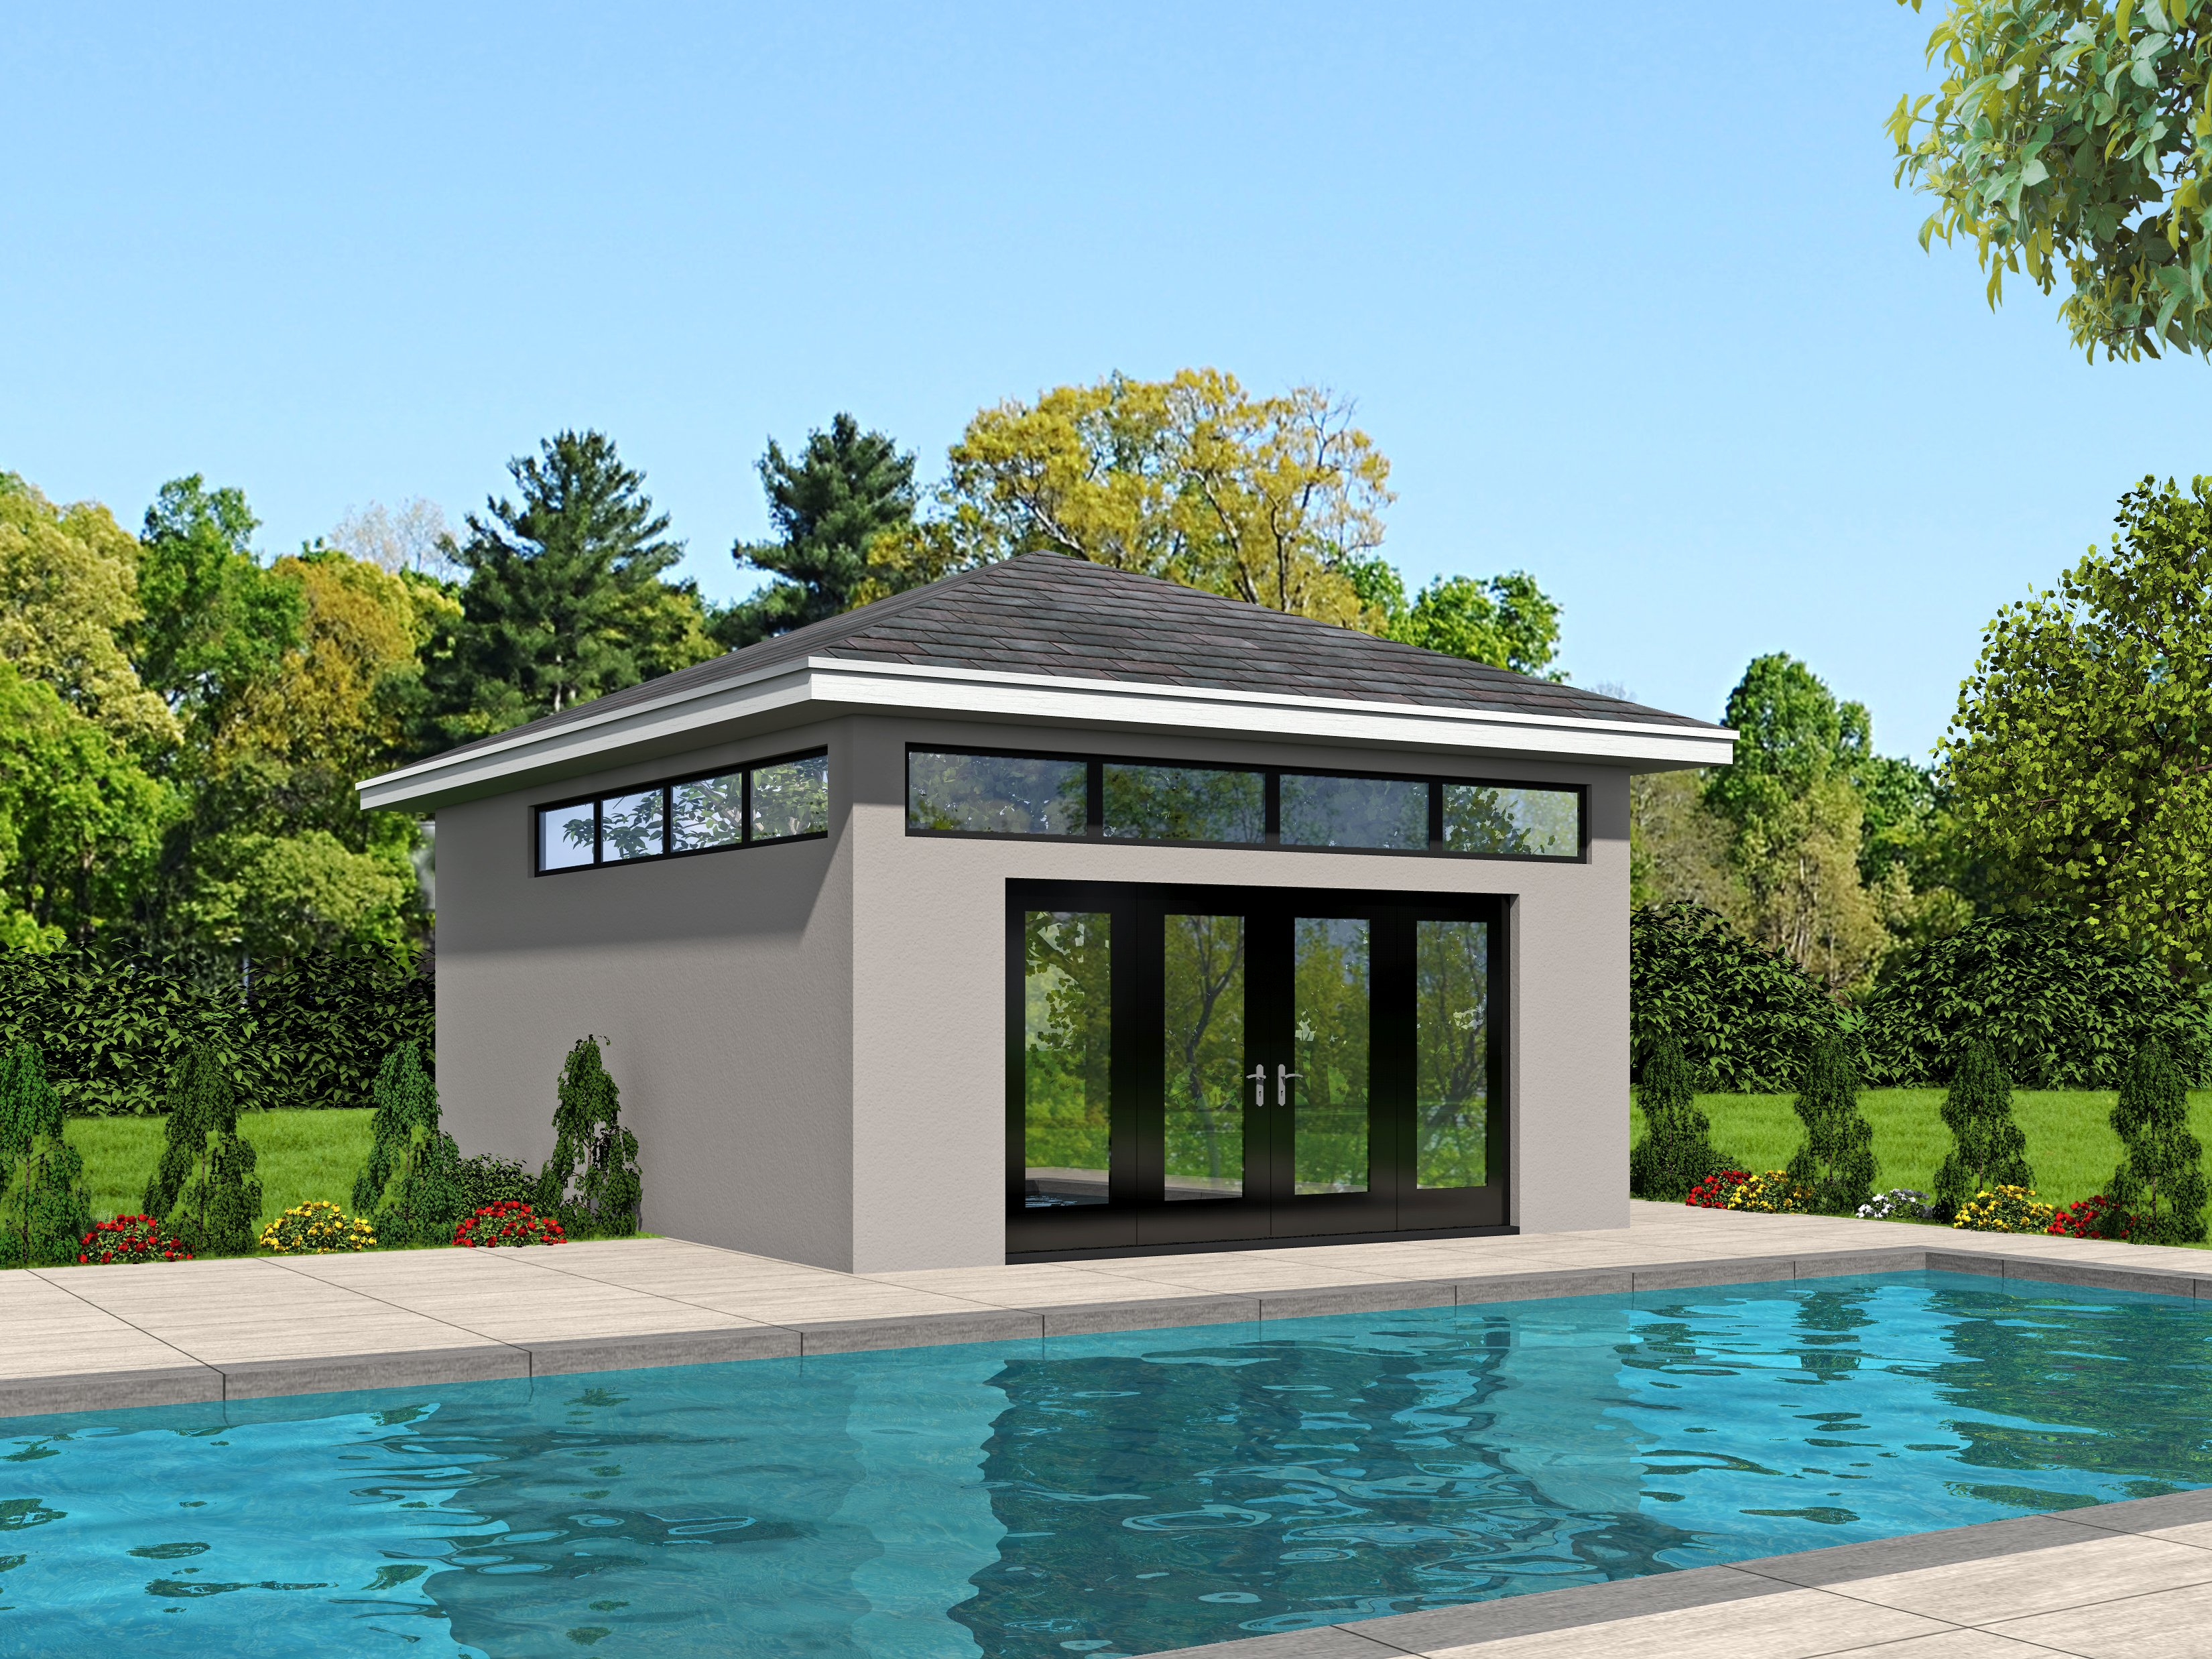 Pool house plans house plans plus for House plan with swimming pool